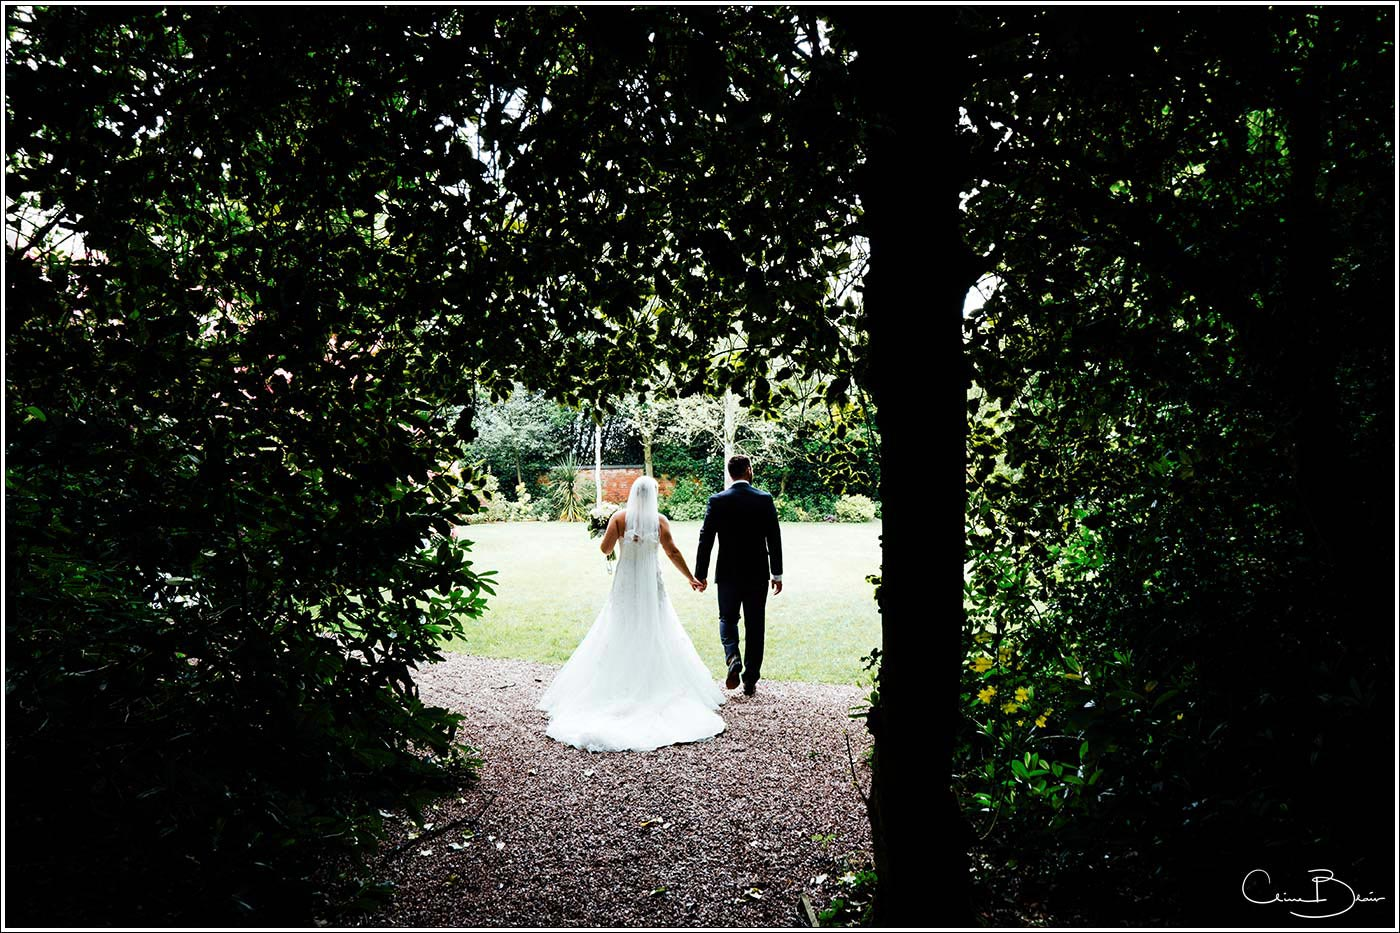 Bride and groom walking alone in the secret garden by Pendrell Hall wedding photographer Clive Blair